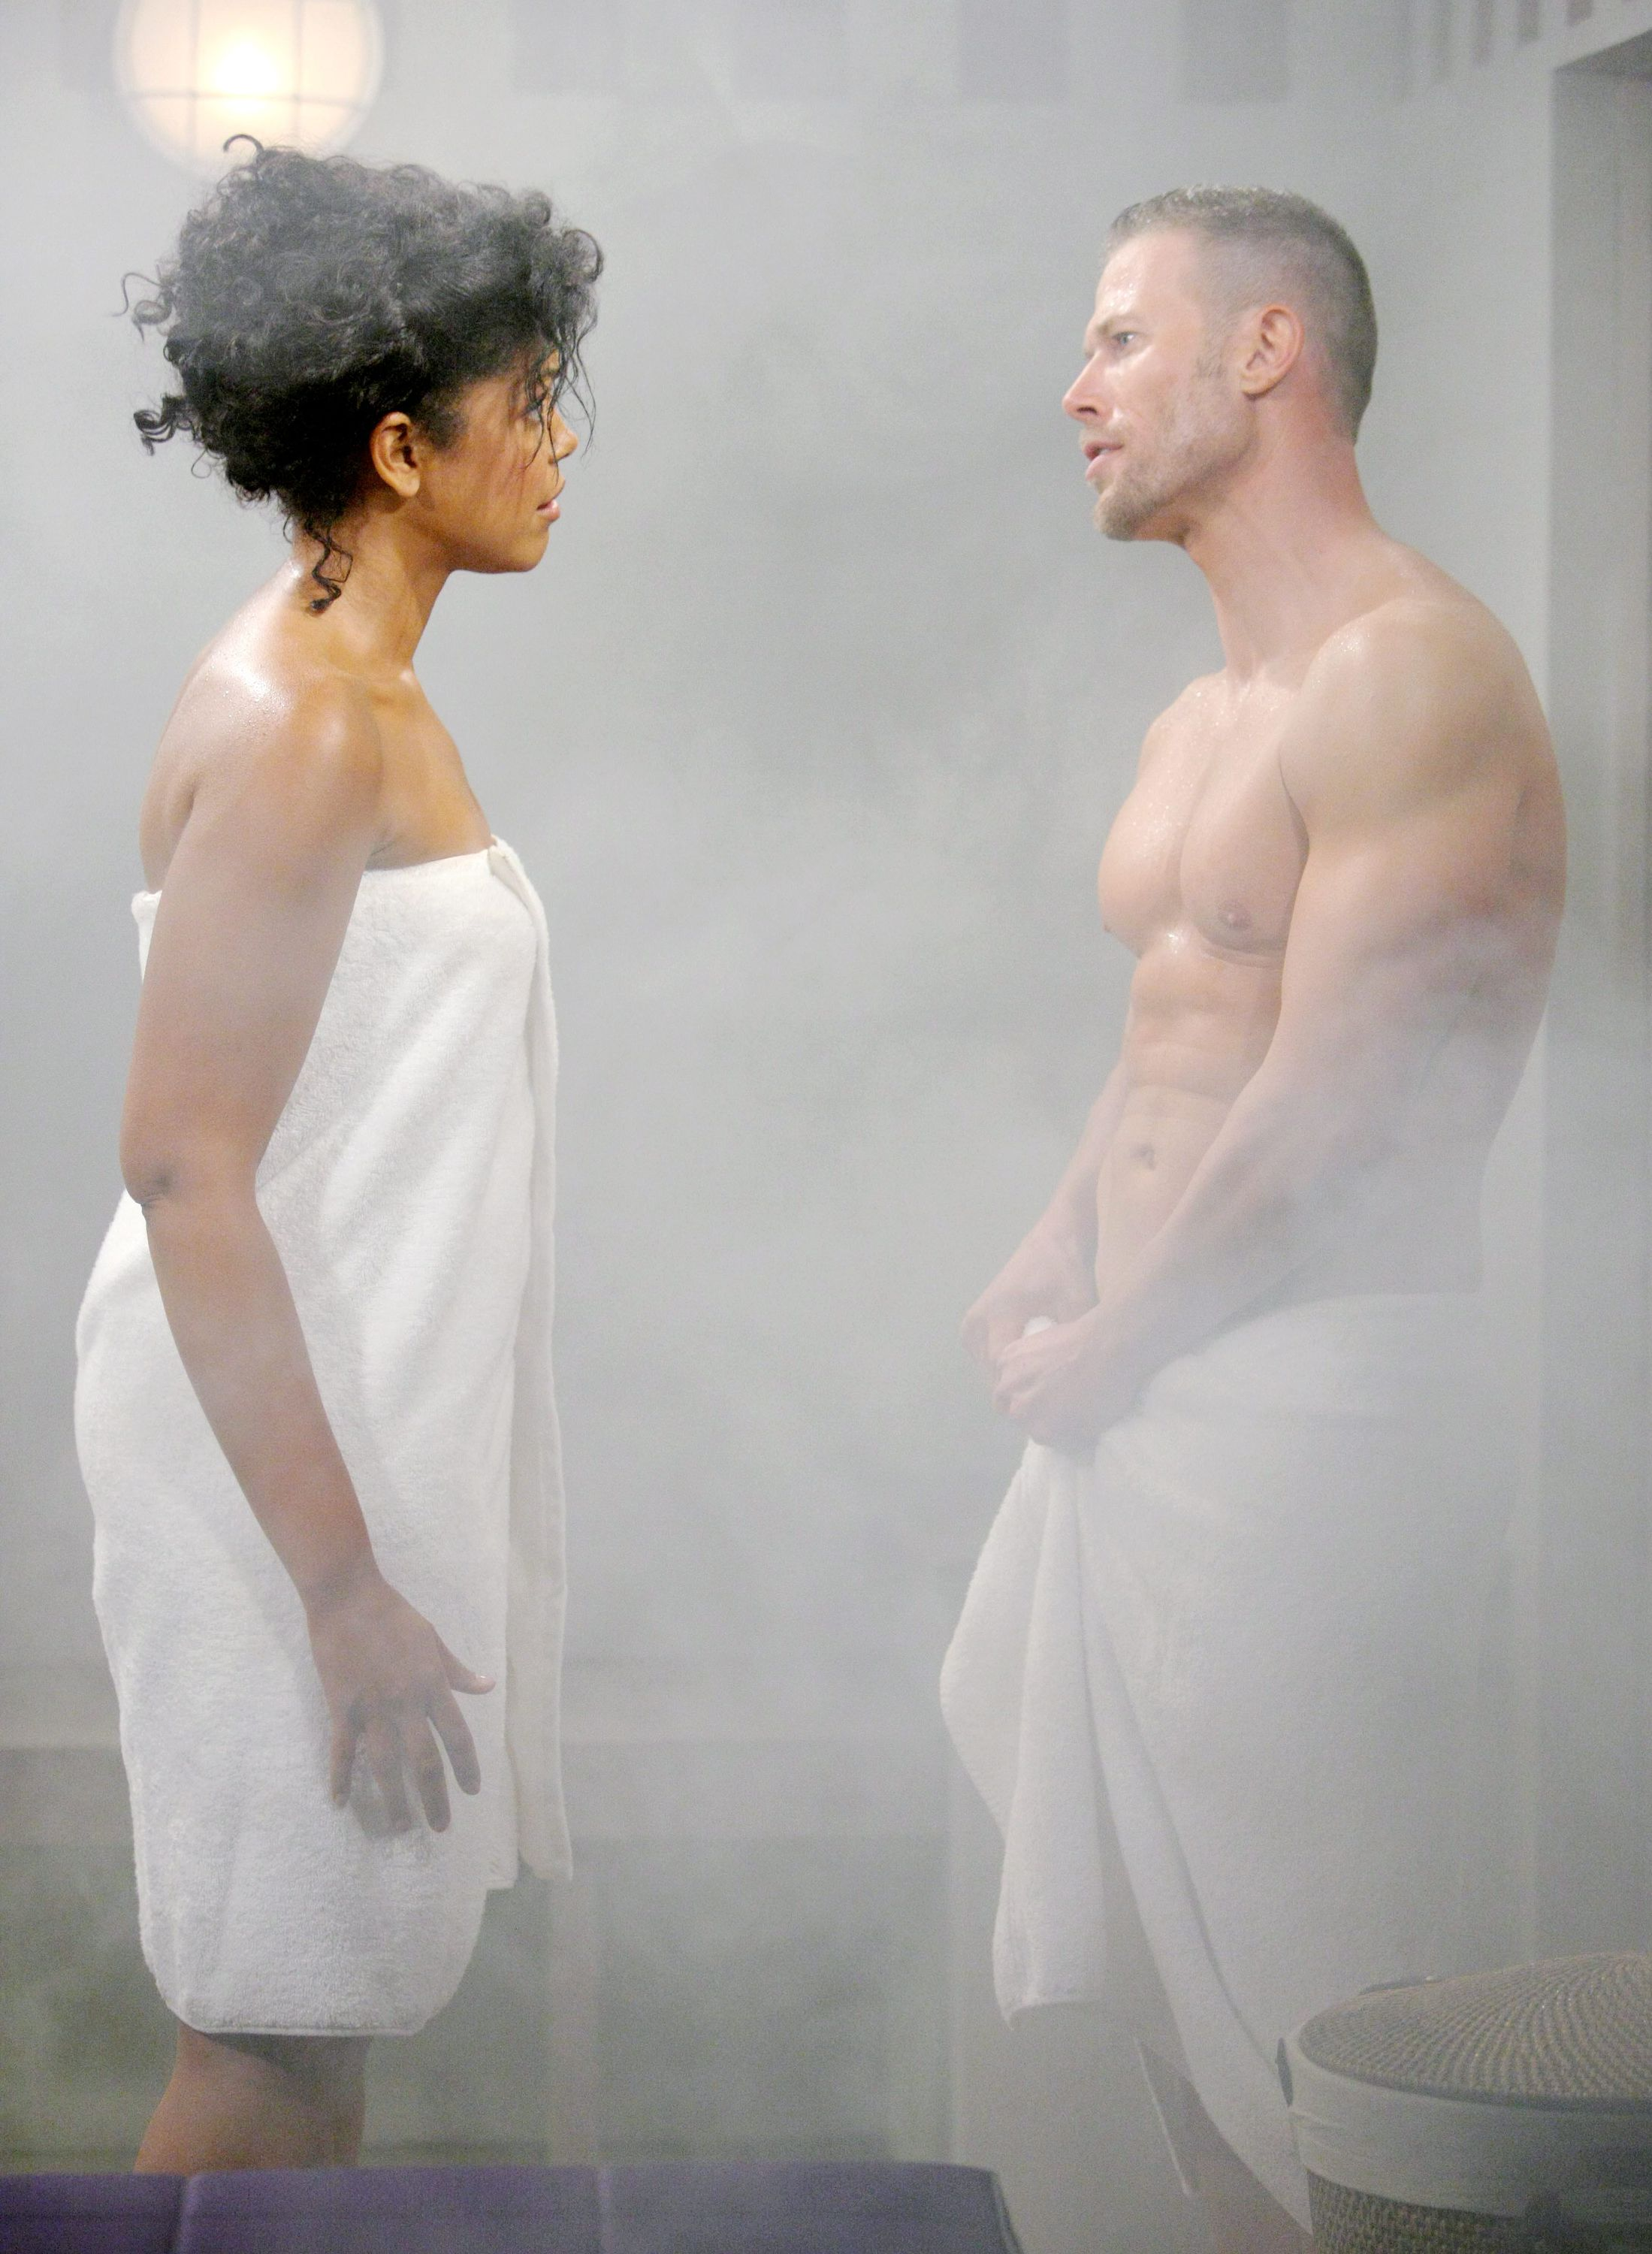 In the Steam Room